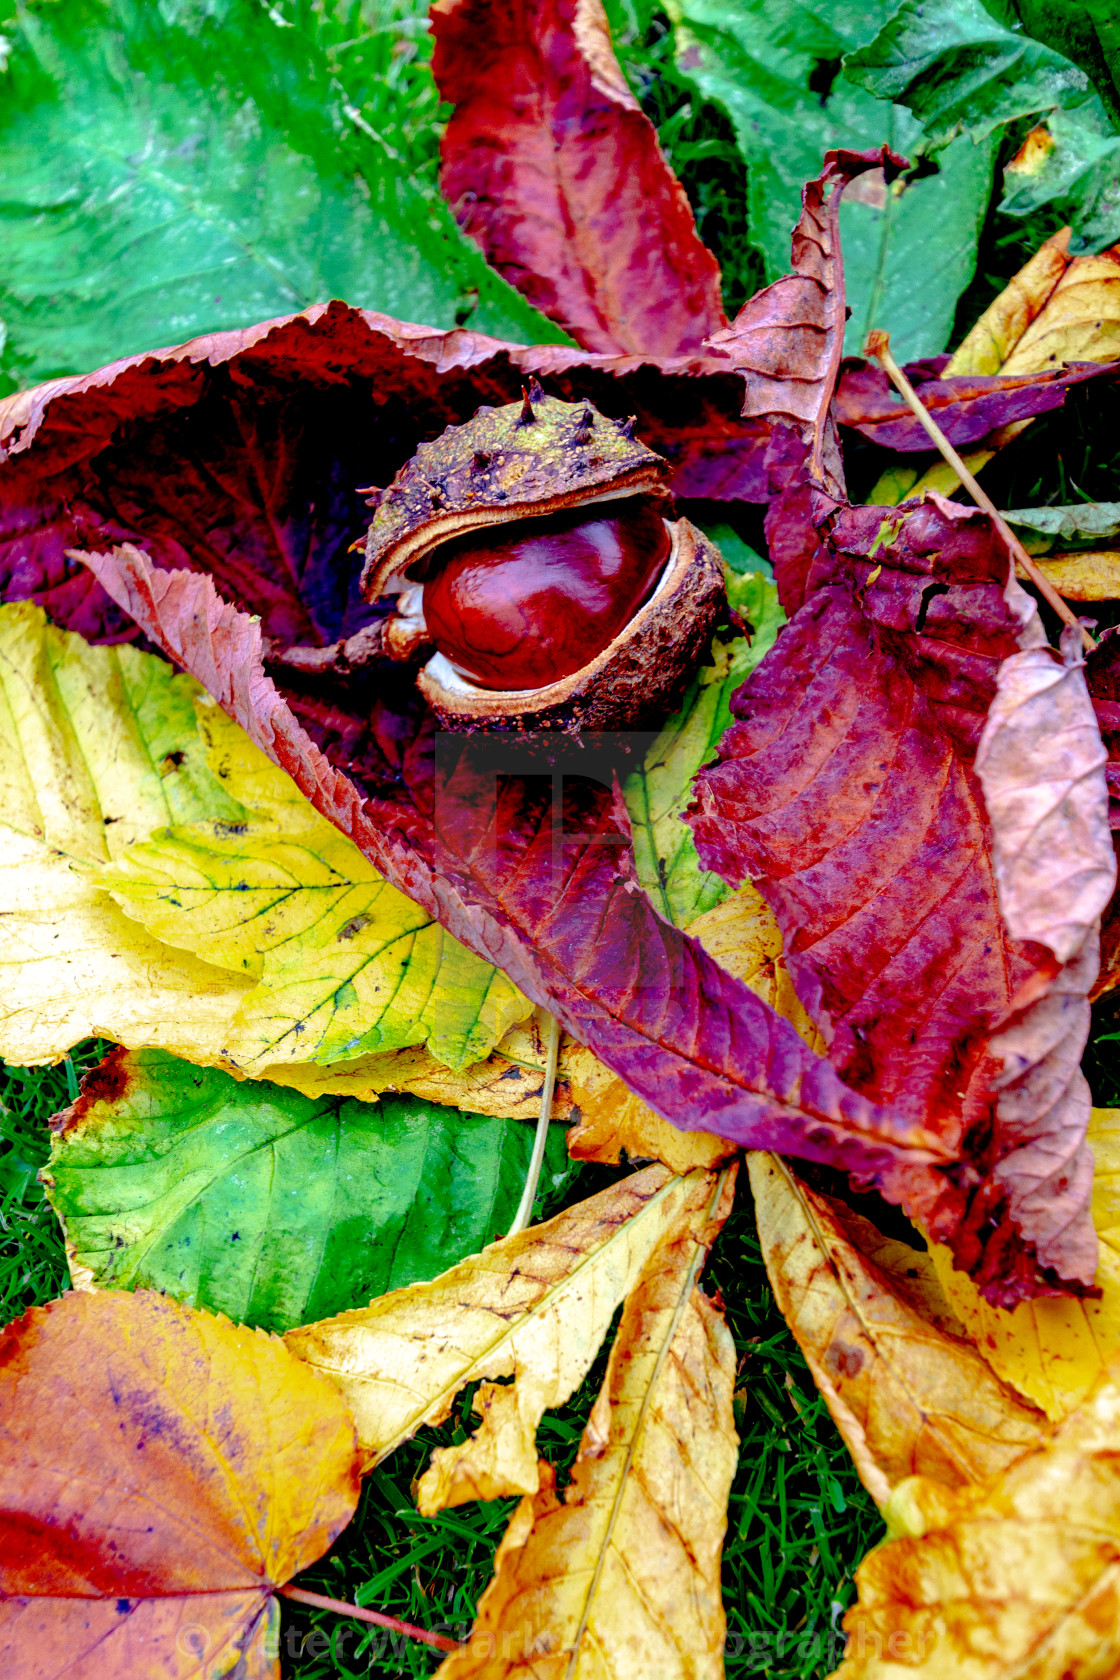 """Conker fallen from Horse Chestnut Tree onto a bed of Leaves in Ilkley Memorial Garden, Yorkshire, England"" stock image"